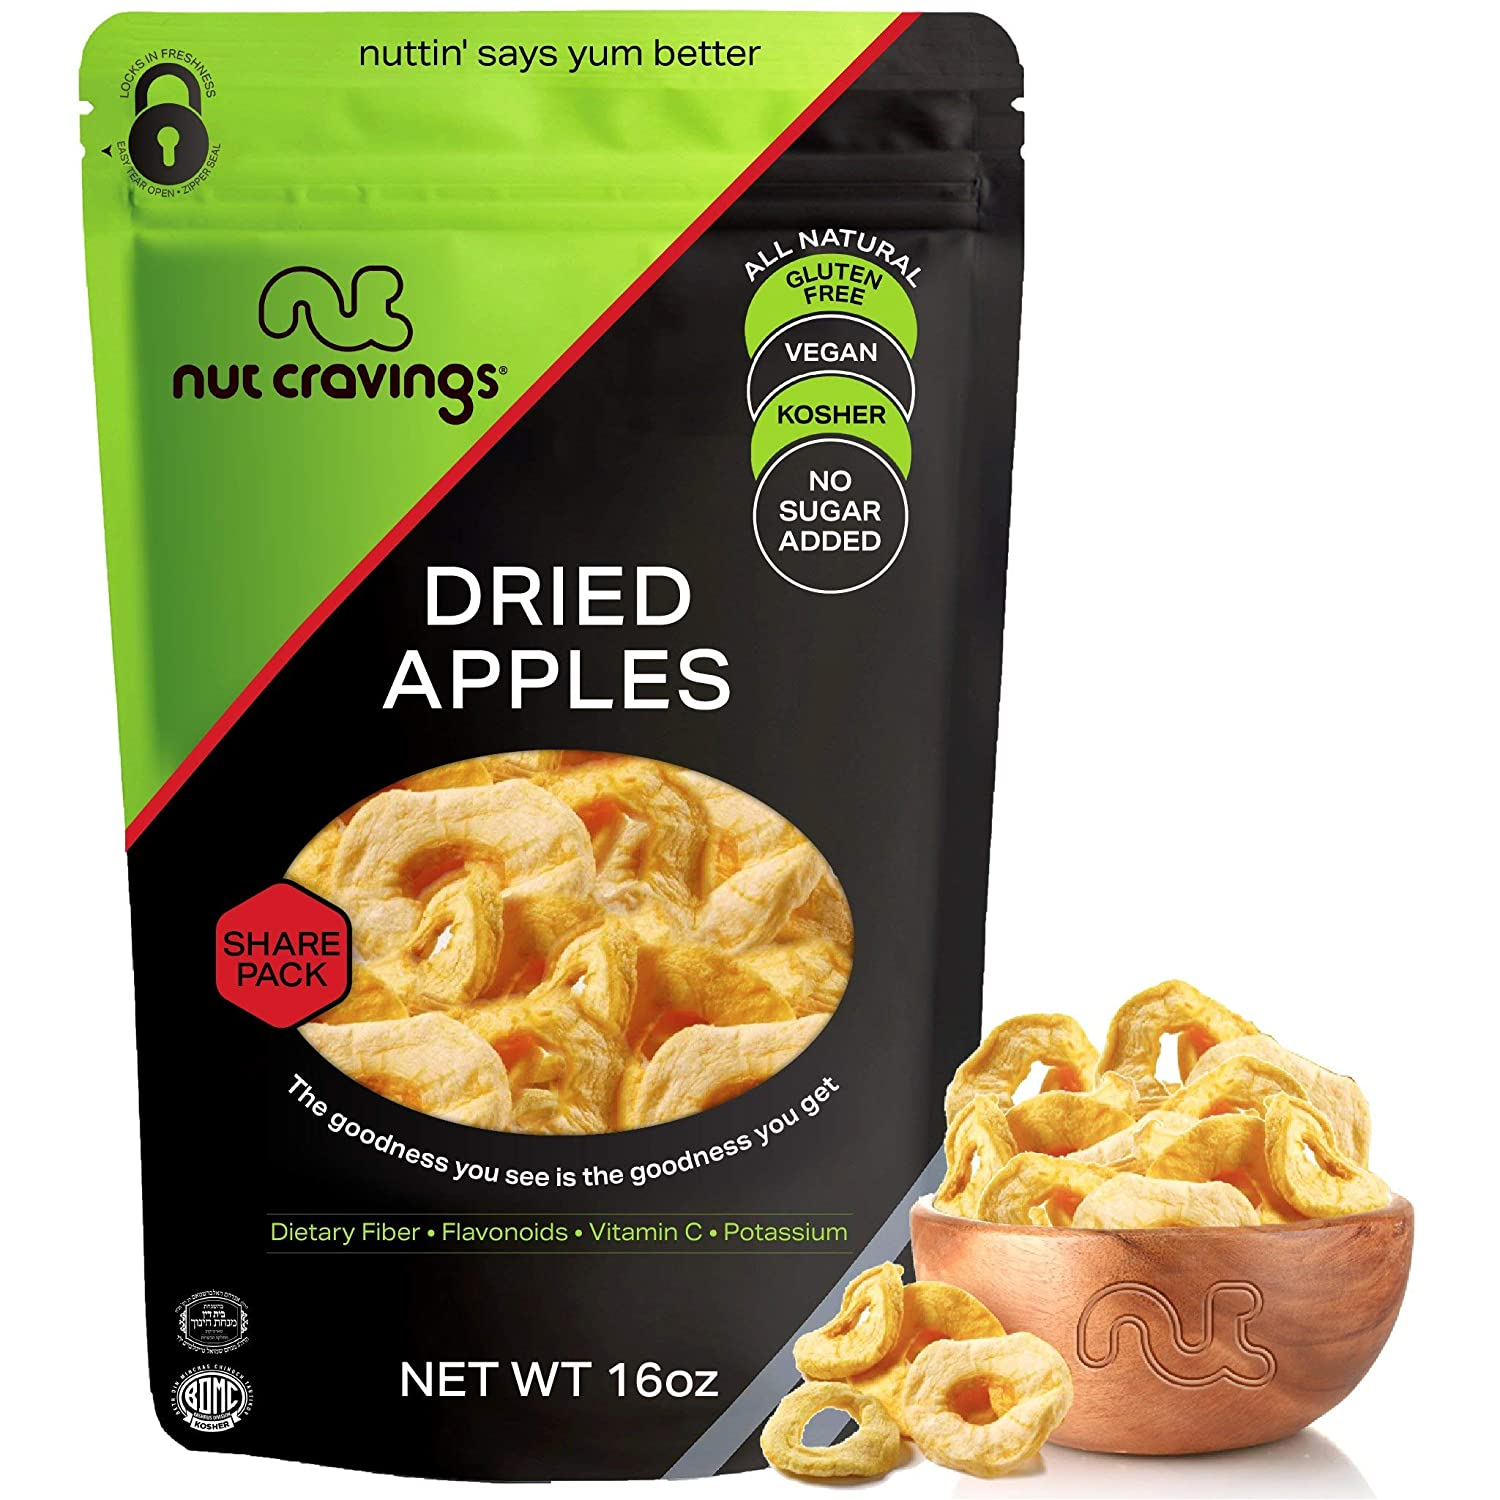 Sun Dried Apple Rings Slices, No Sugar Added (16oz - 1 Pound) Packed Fresh in Resealable Bag - Sweet Dehydrated Fruit Treat, Trail Mix Snack - Healthy Food, All Natural, Vegan, Kosher Certified